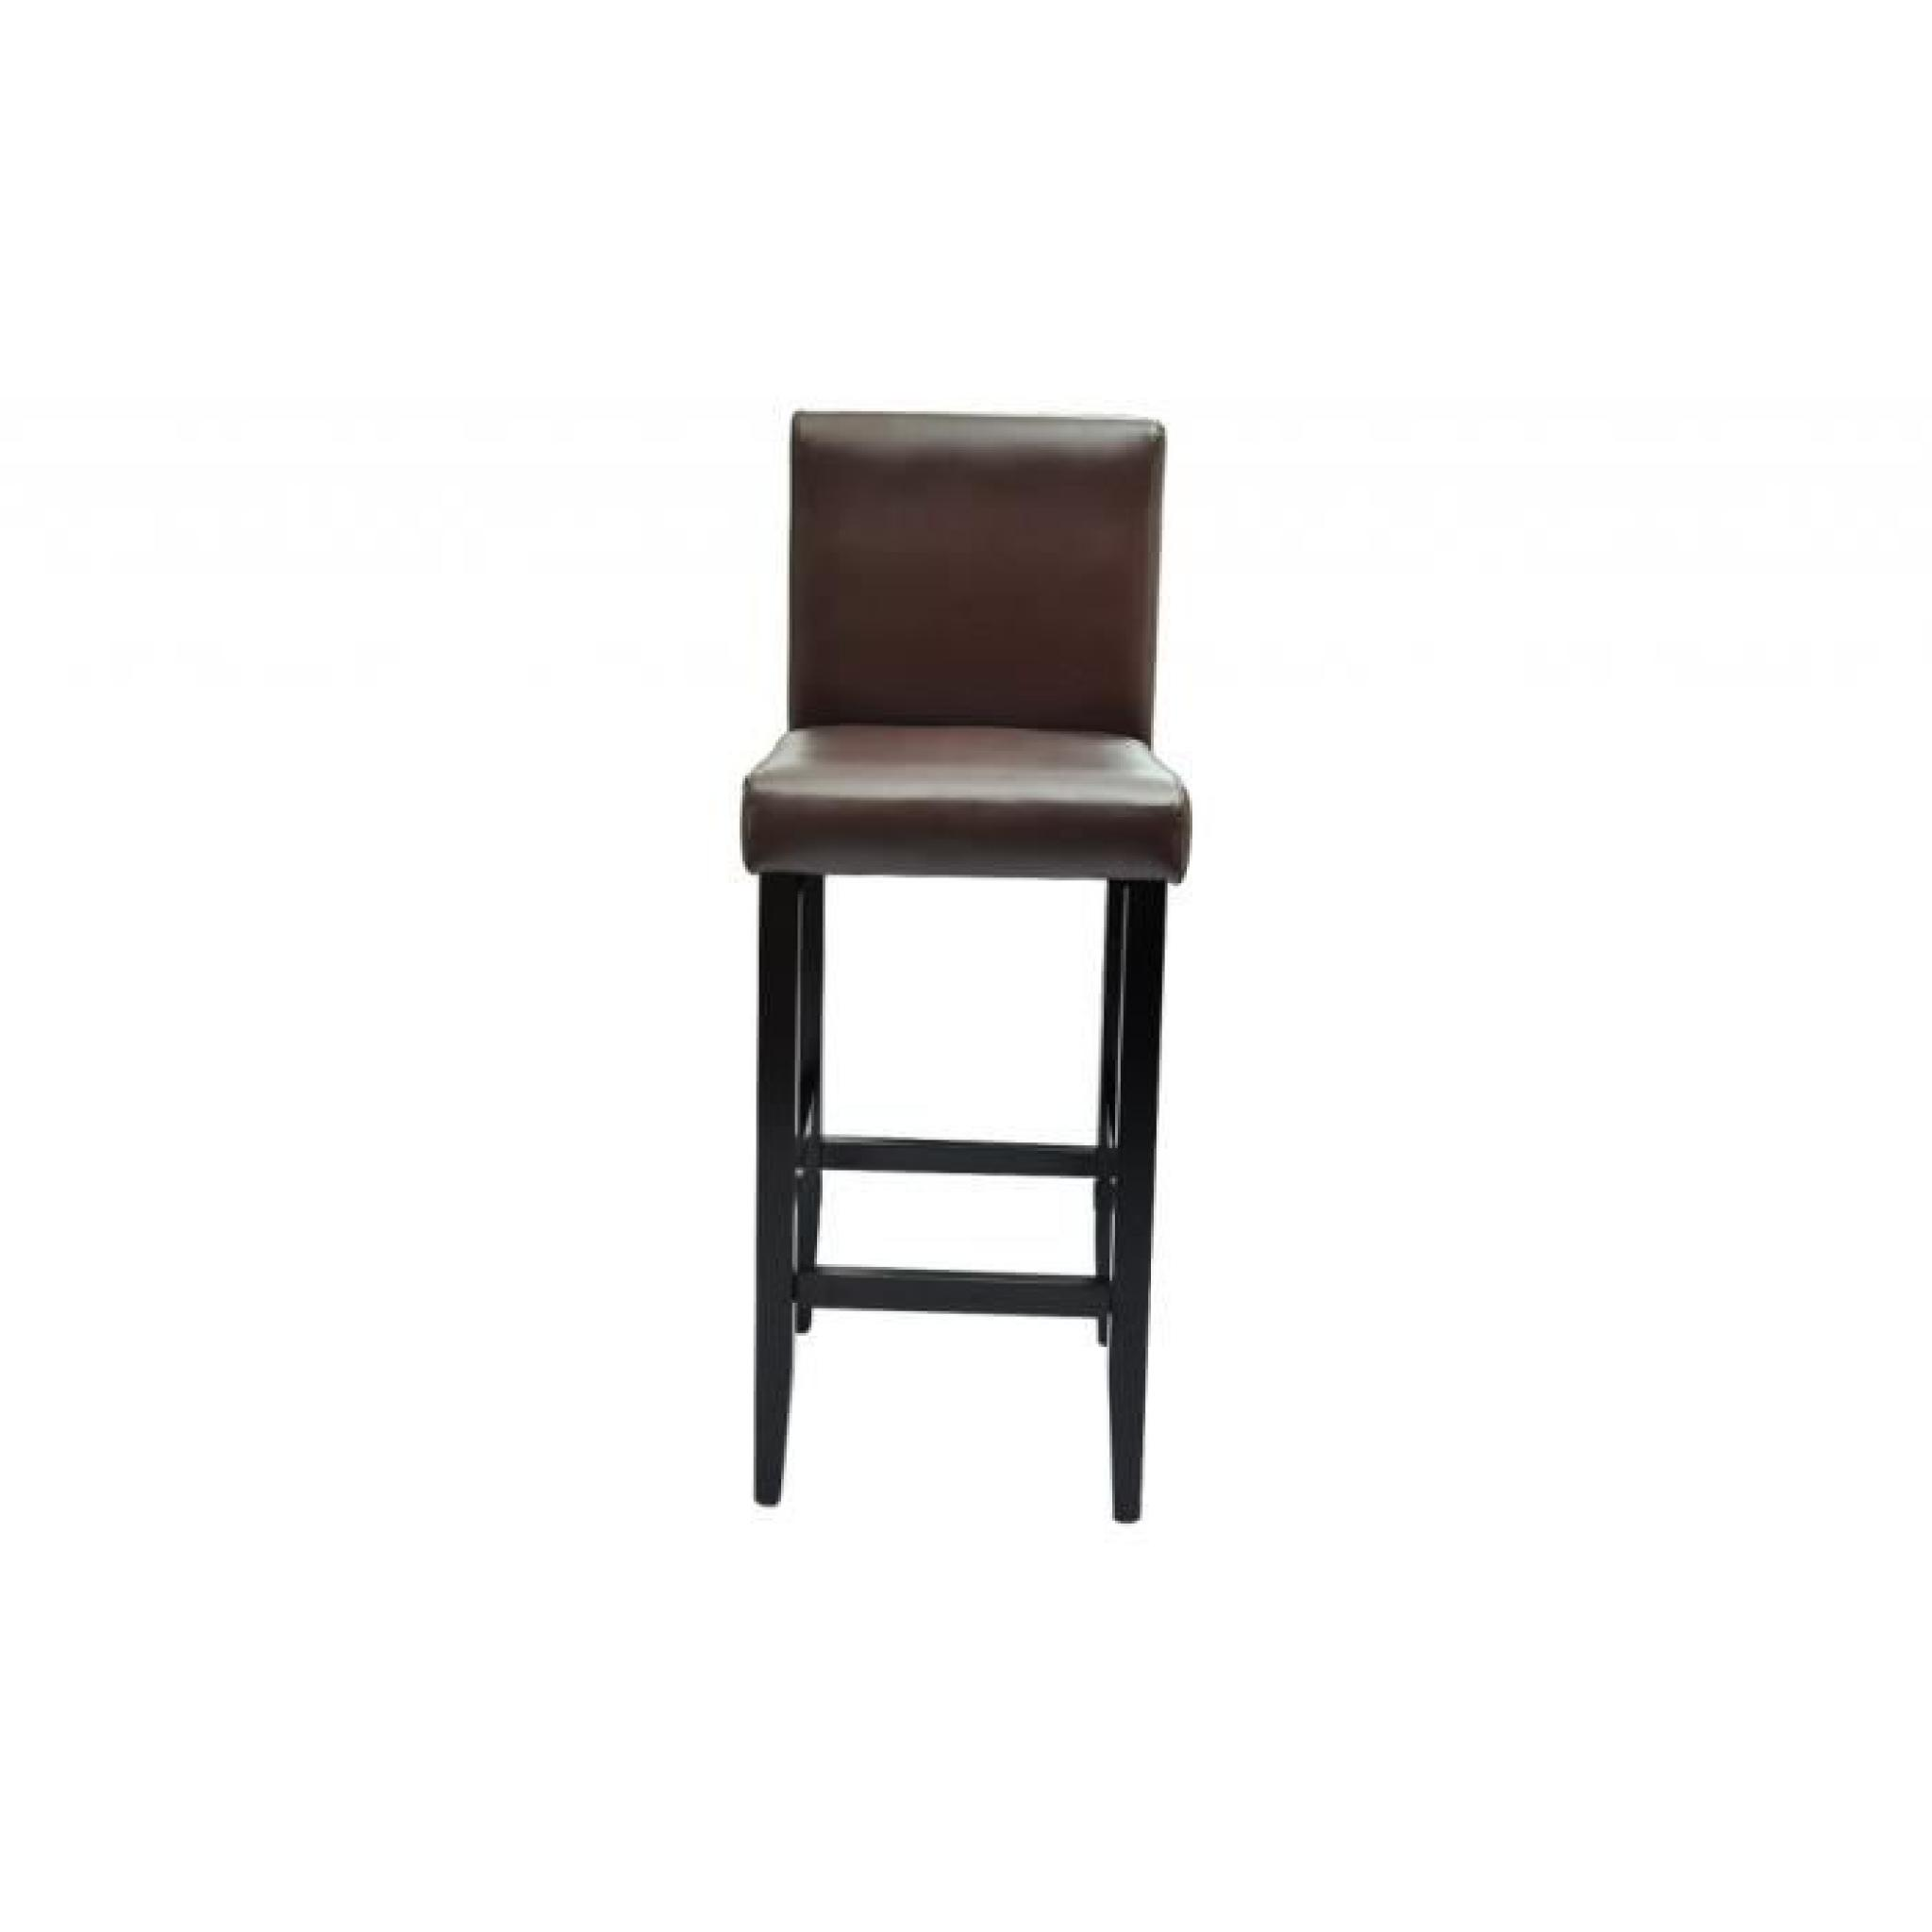 6 Tabourets De Bar Lot De 6 Tabourets De Bar Chicago Achat Vente Tabouret